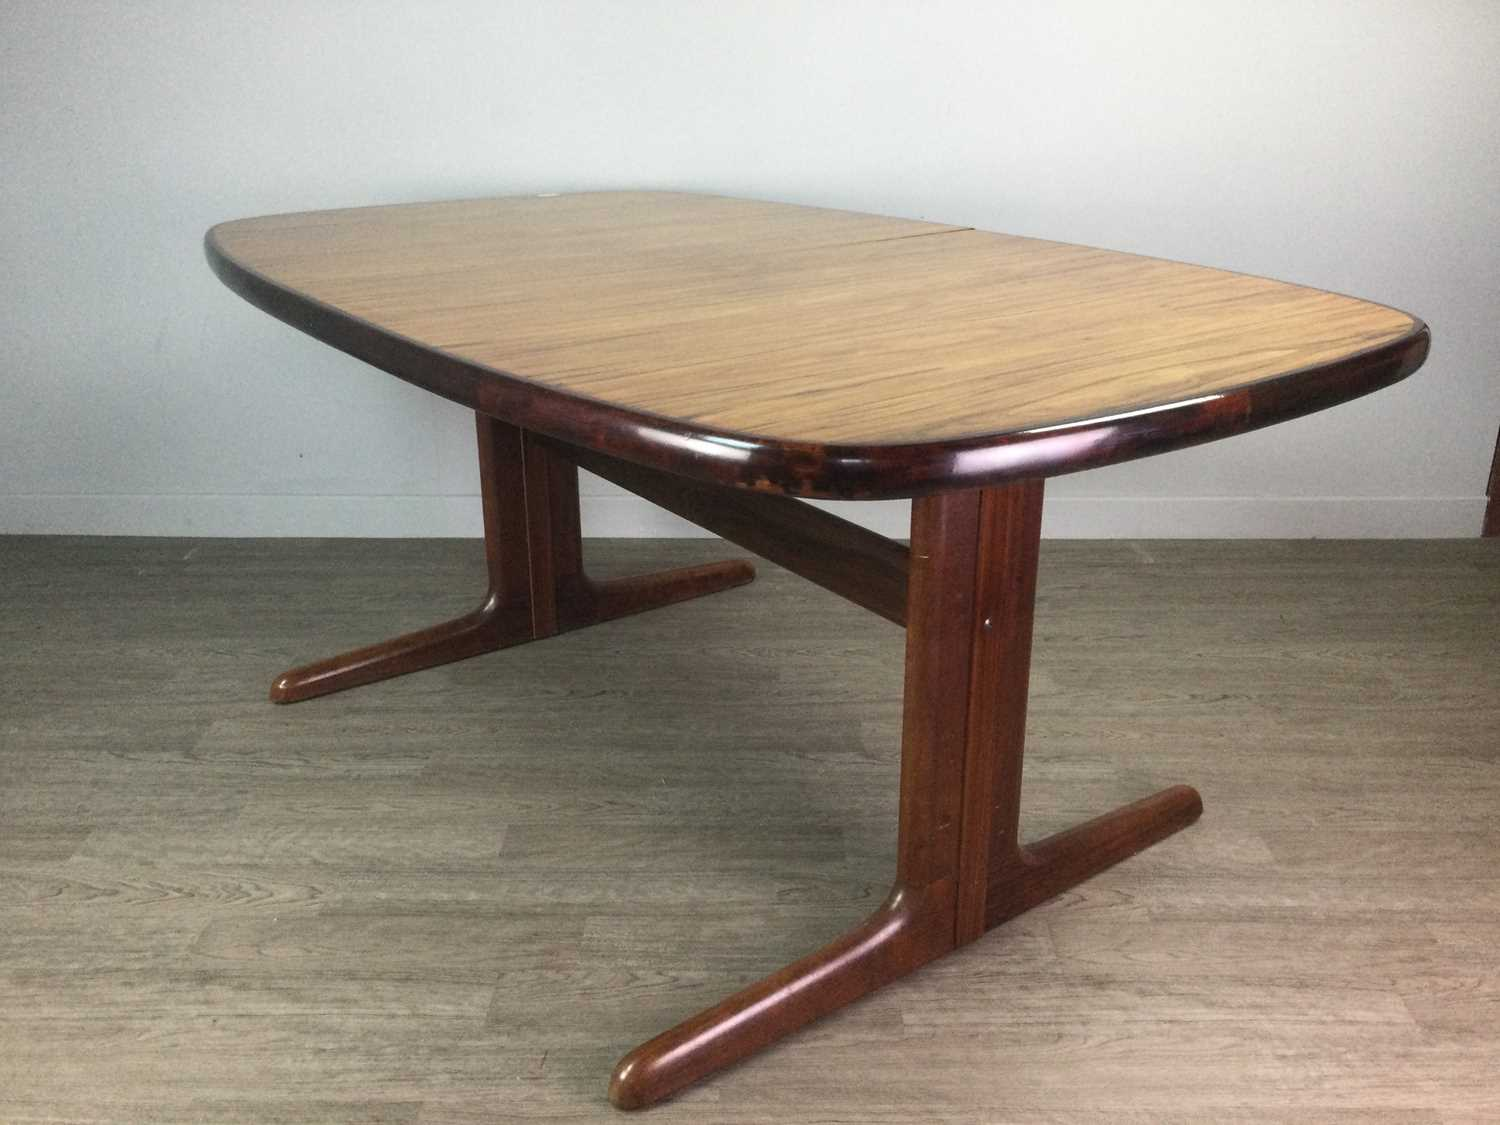 Lot 1327 - A MID-CENTURY DANISH DINING TABLE AND SIDEBOARD BY SKOVBY